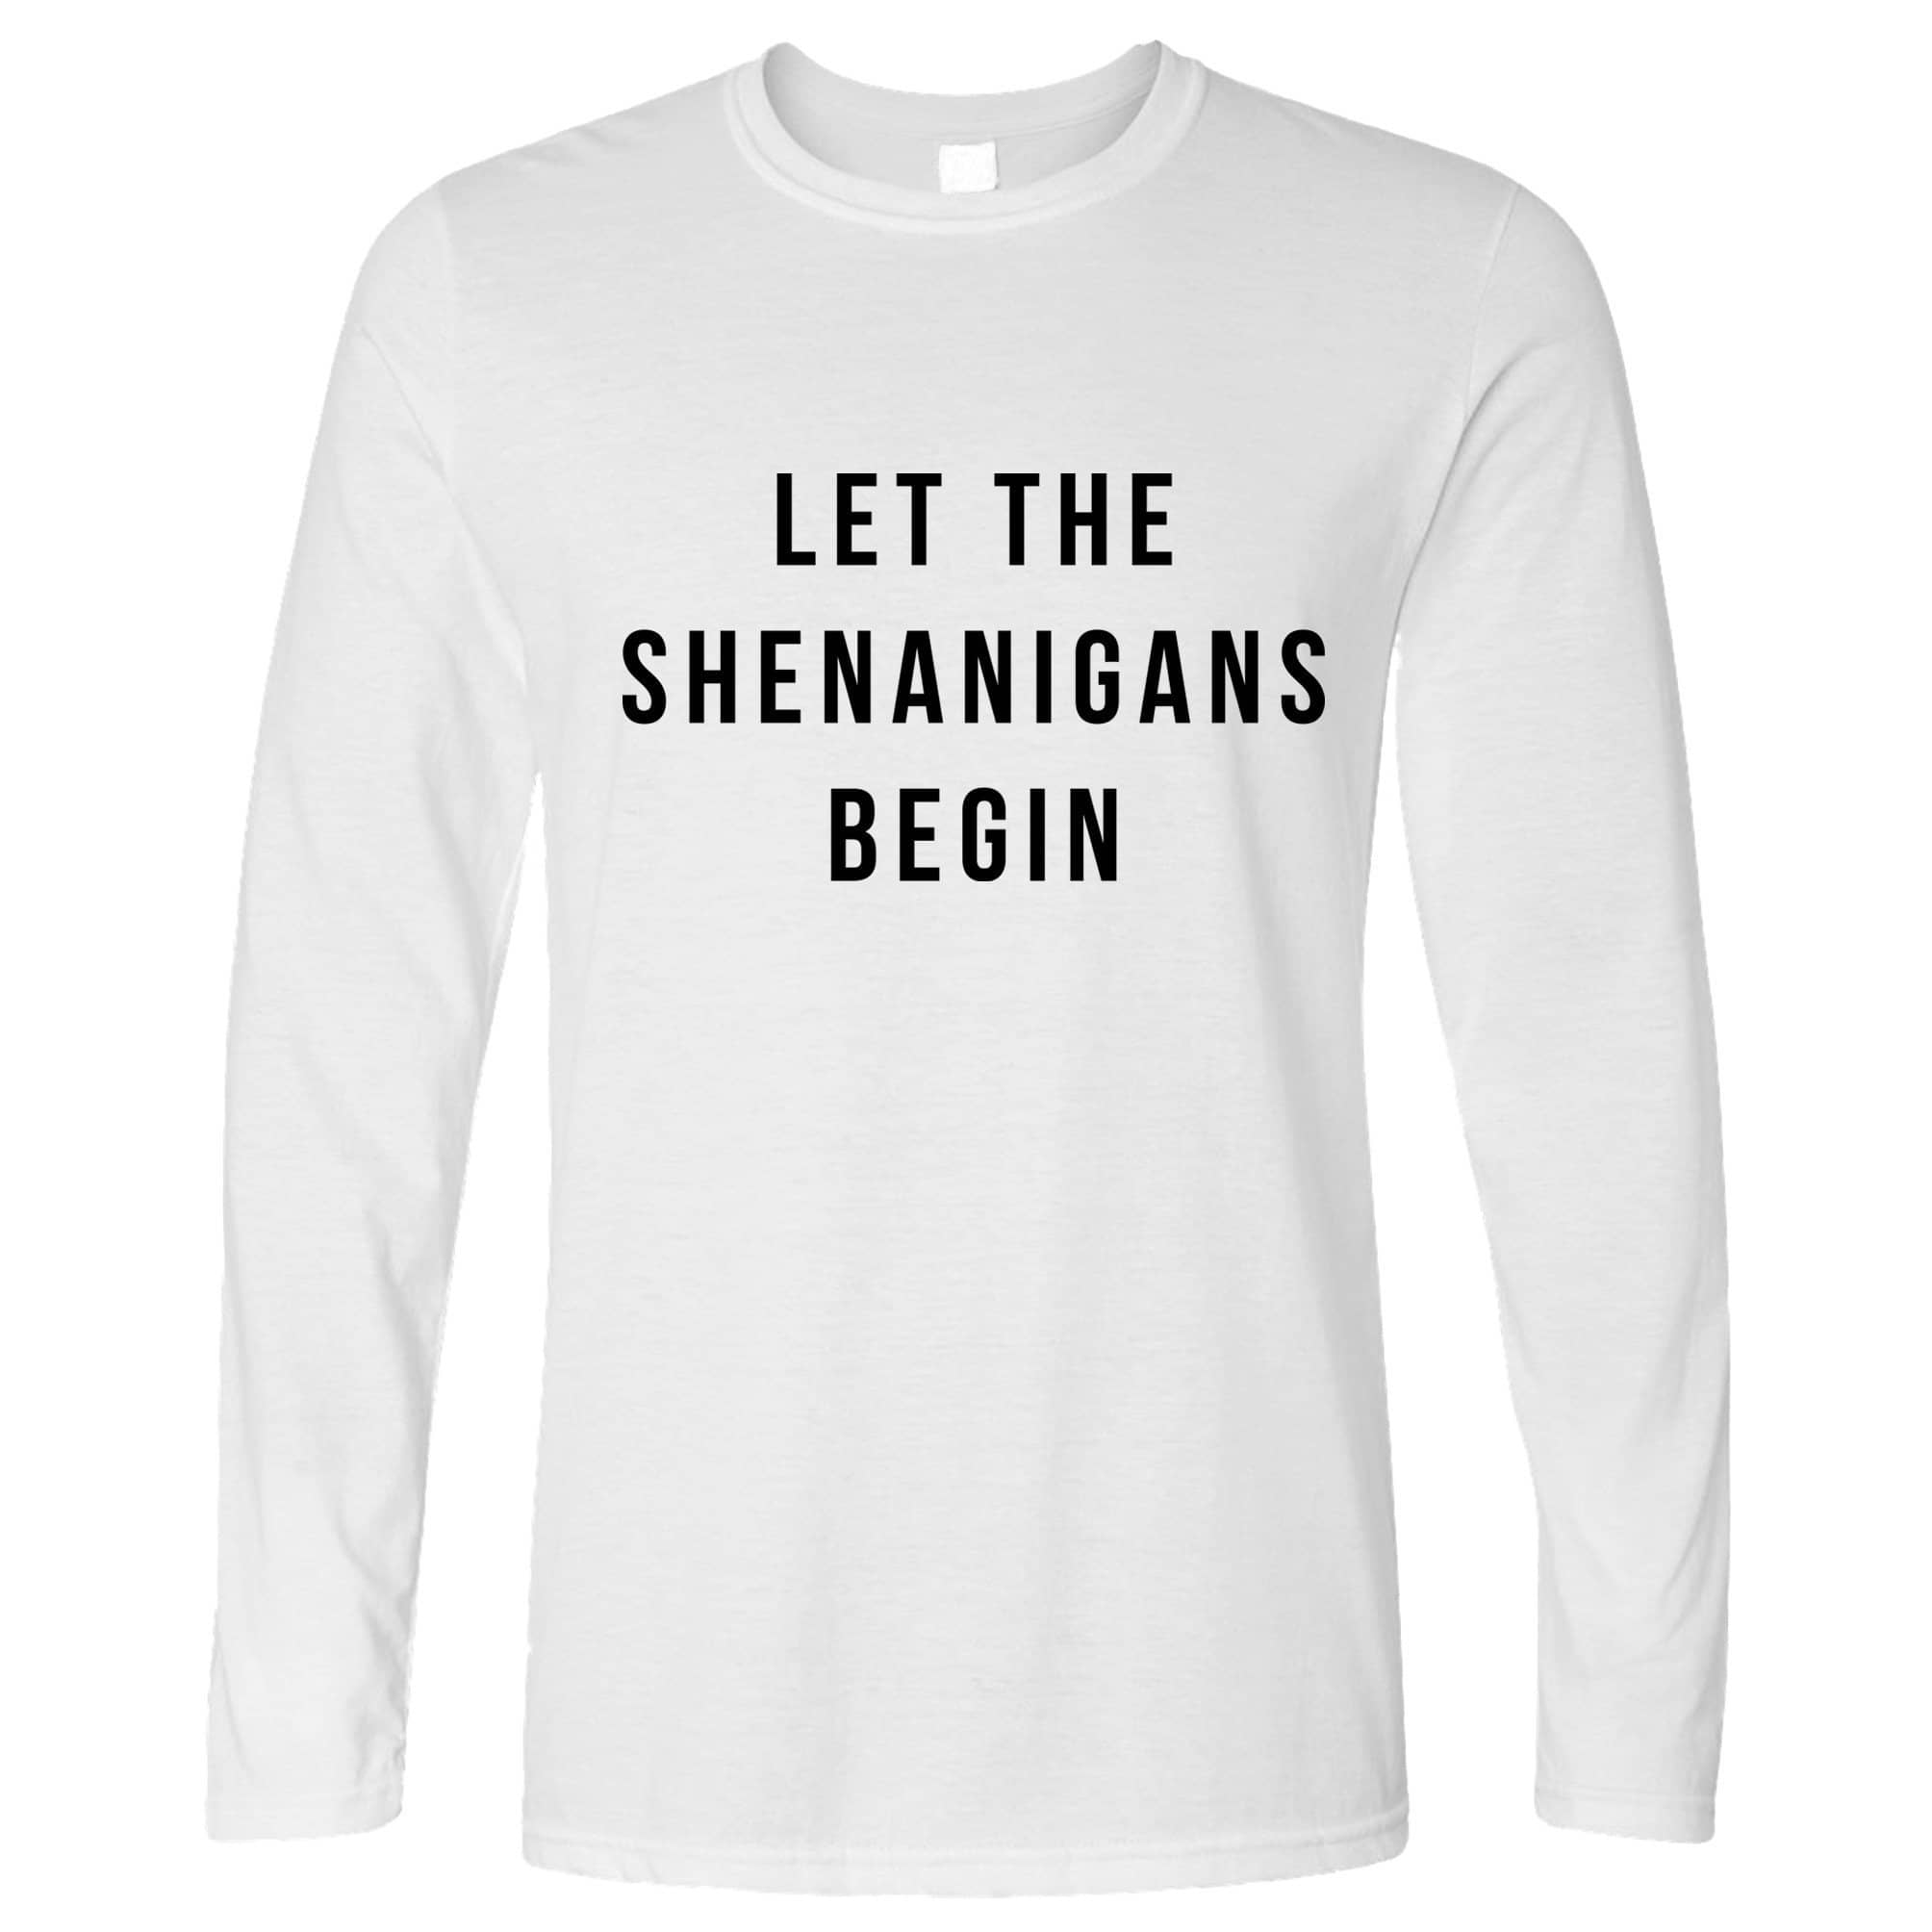 Novelty Long Sleeve Let The Shenanigans Begin Slogan T-Shirt